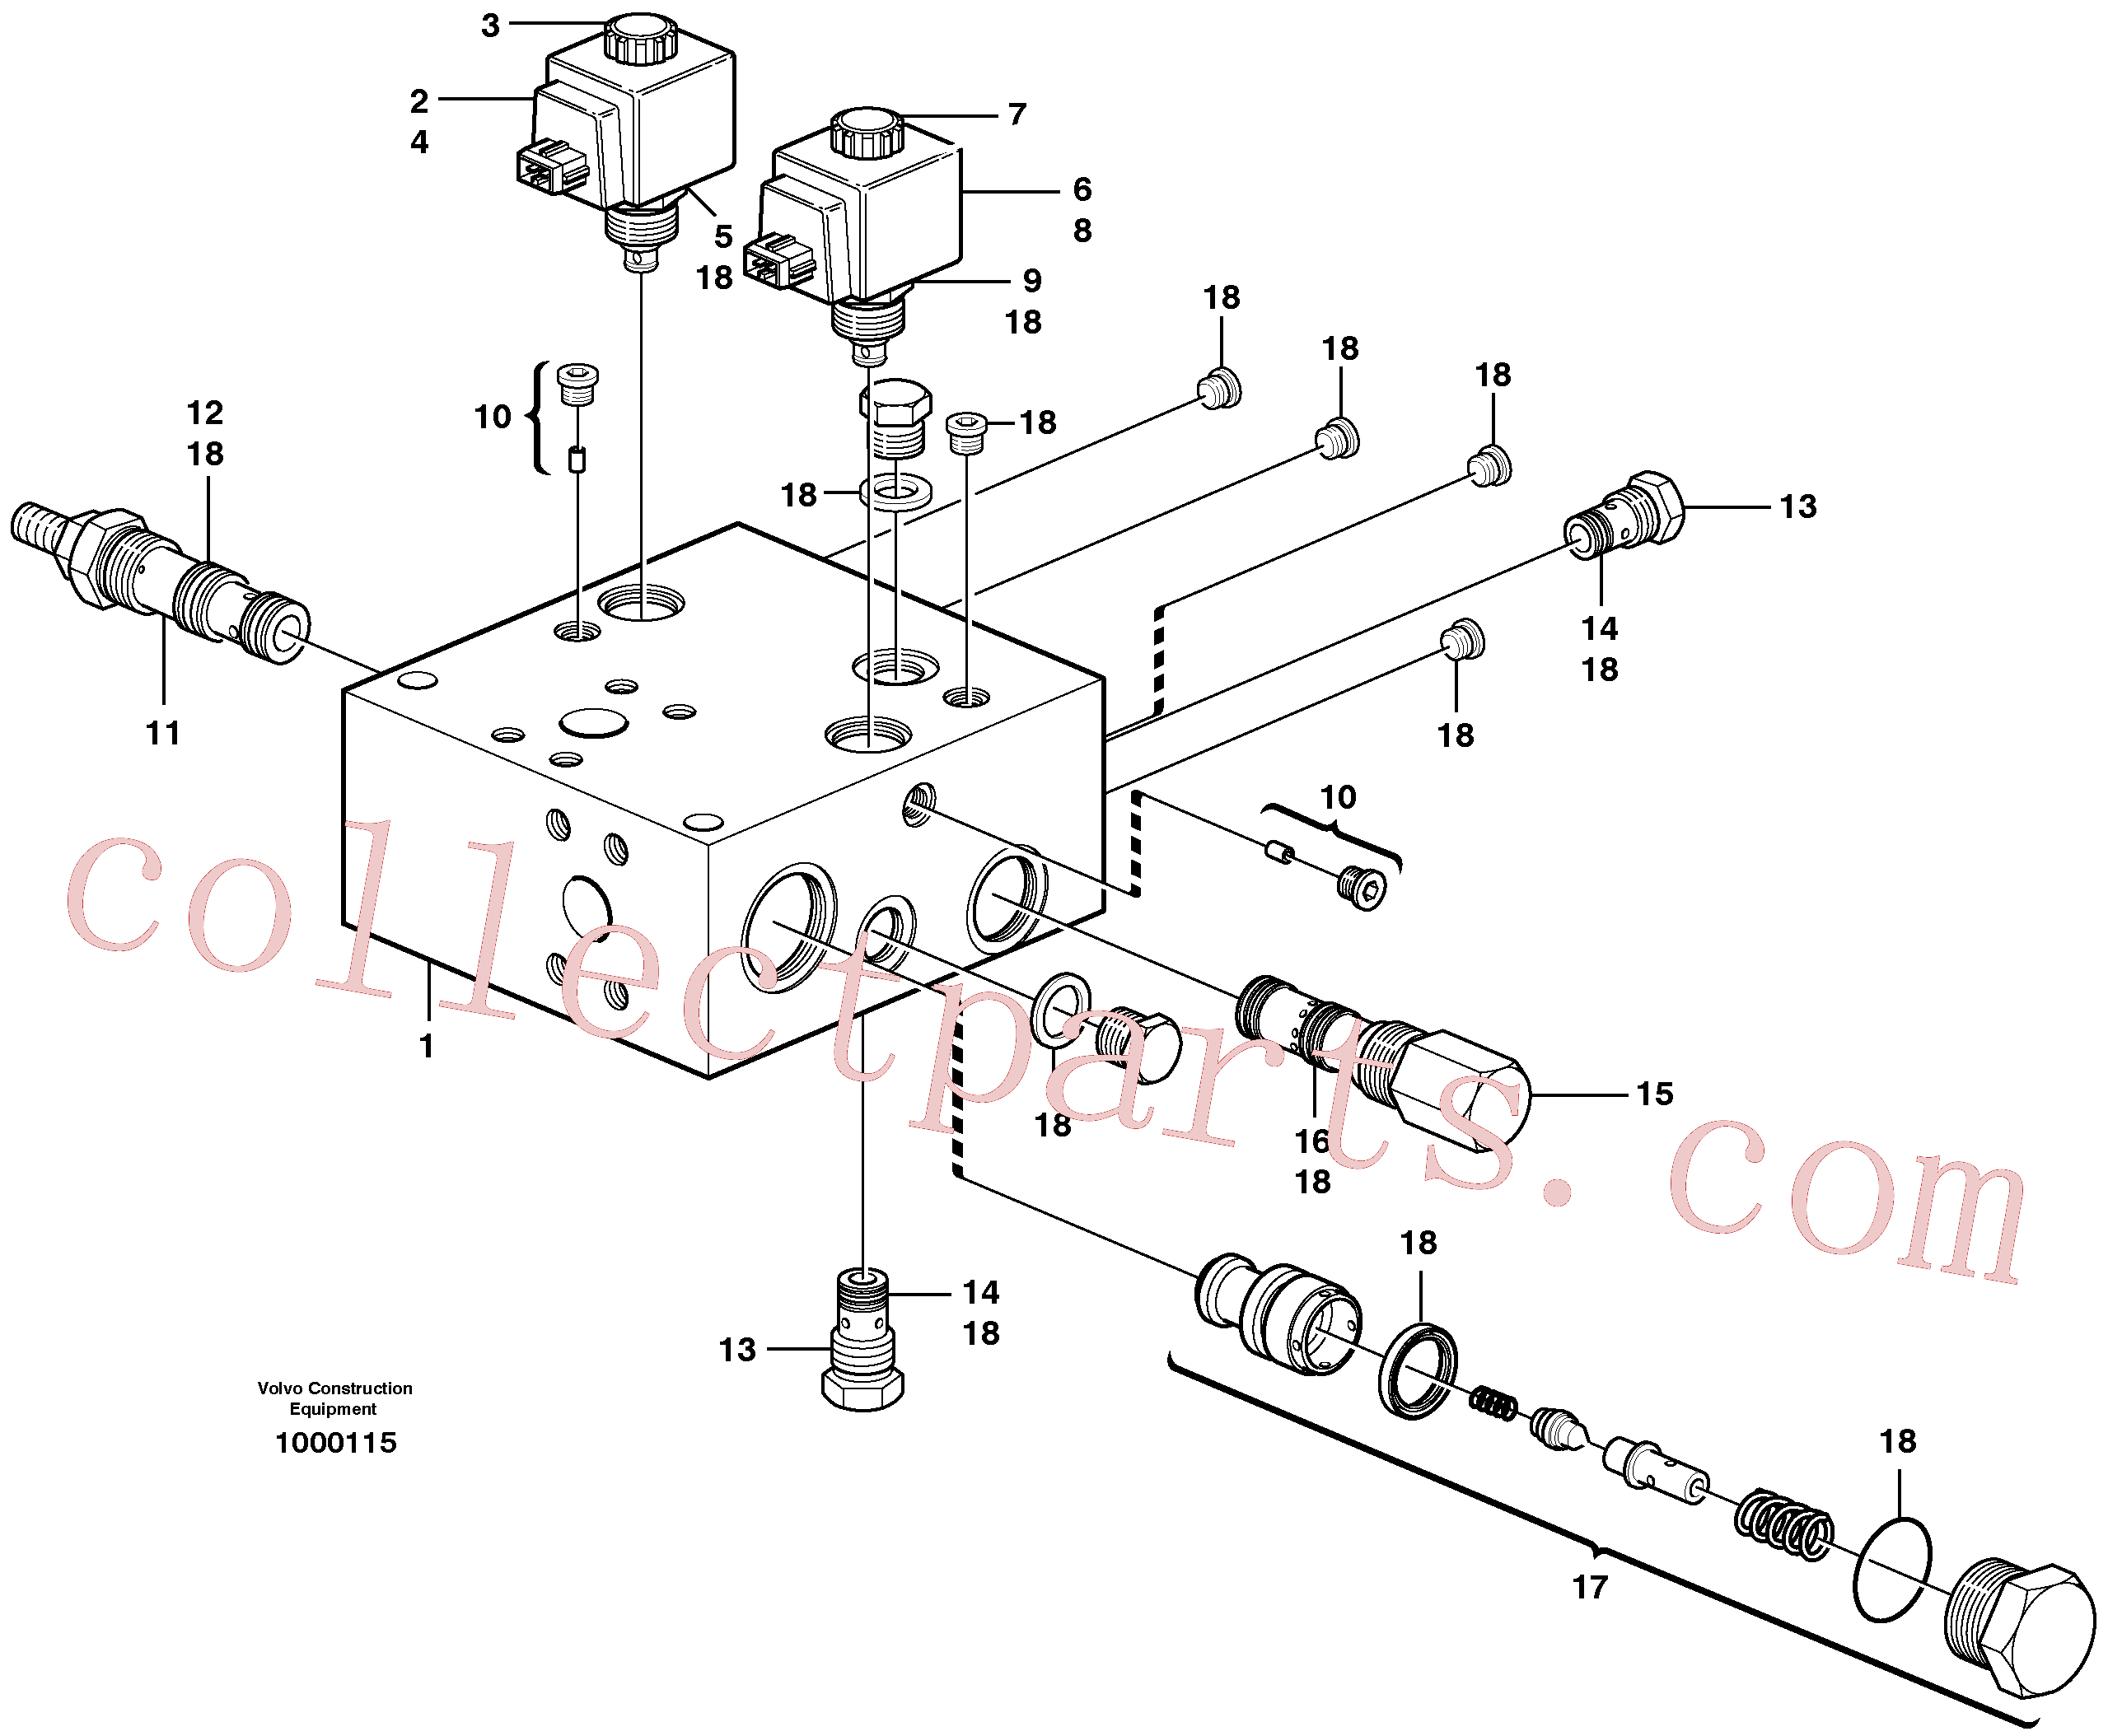 VOE11714081 for Volvo Relief valve, Relief valve., Valve, circuit body and return valve(1000115 assembly)